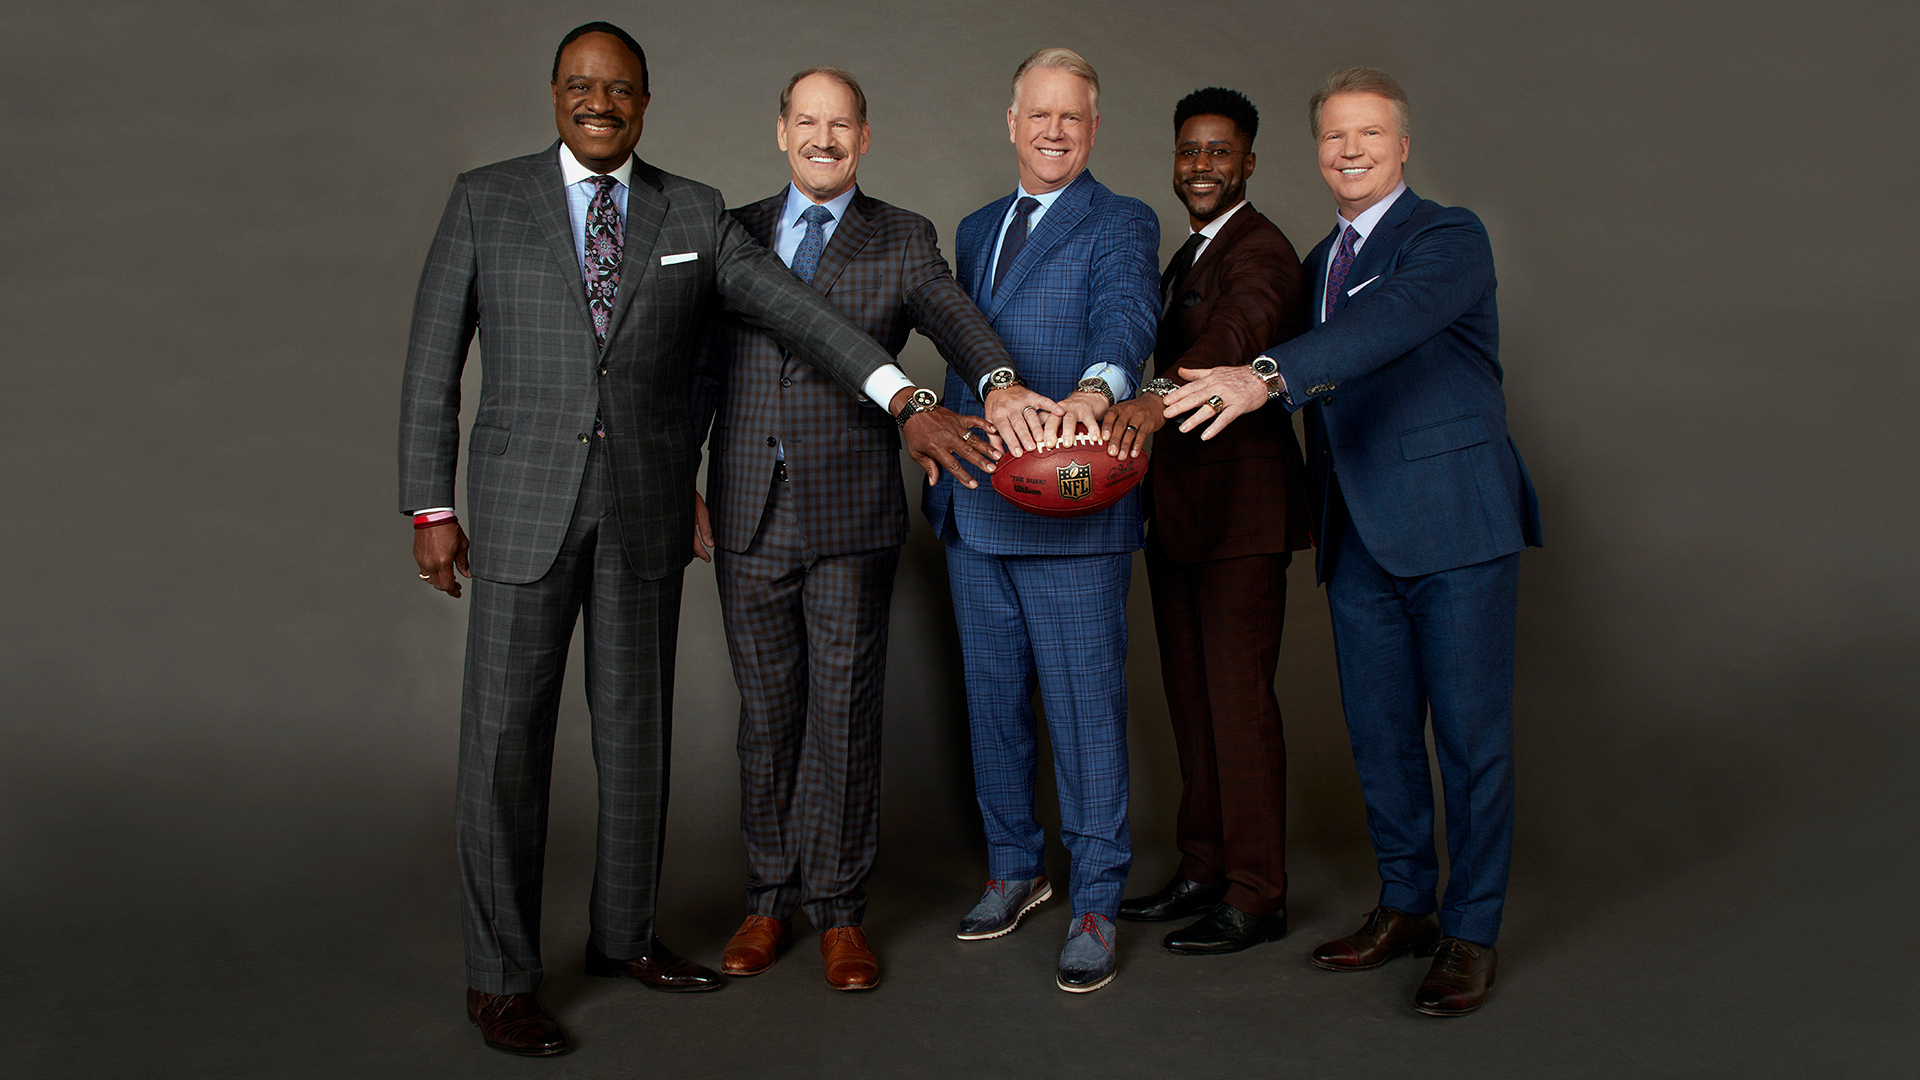 The fellas of The NFL Today are going to the Super Bowl!